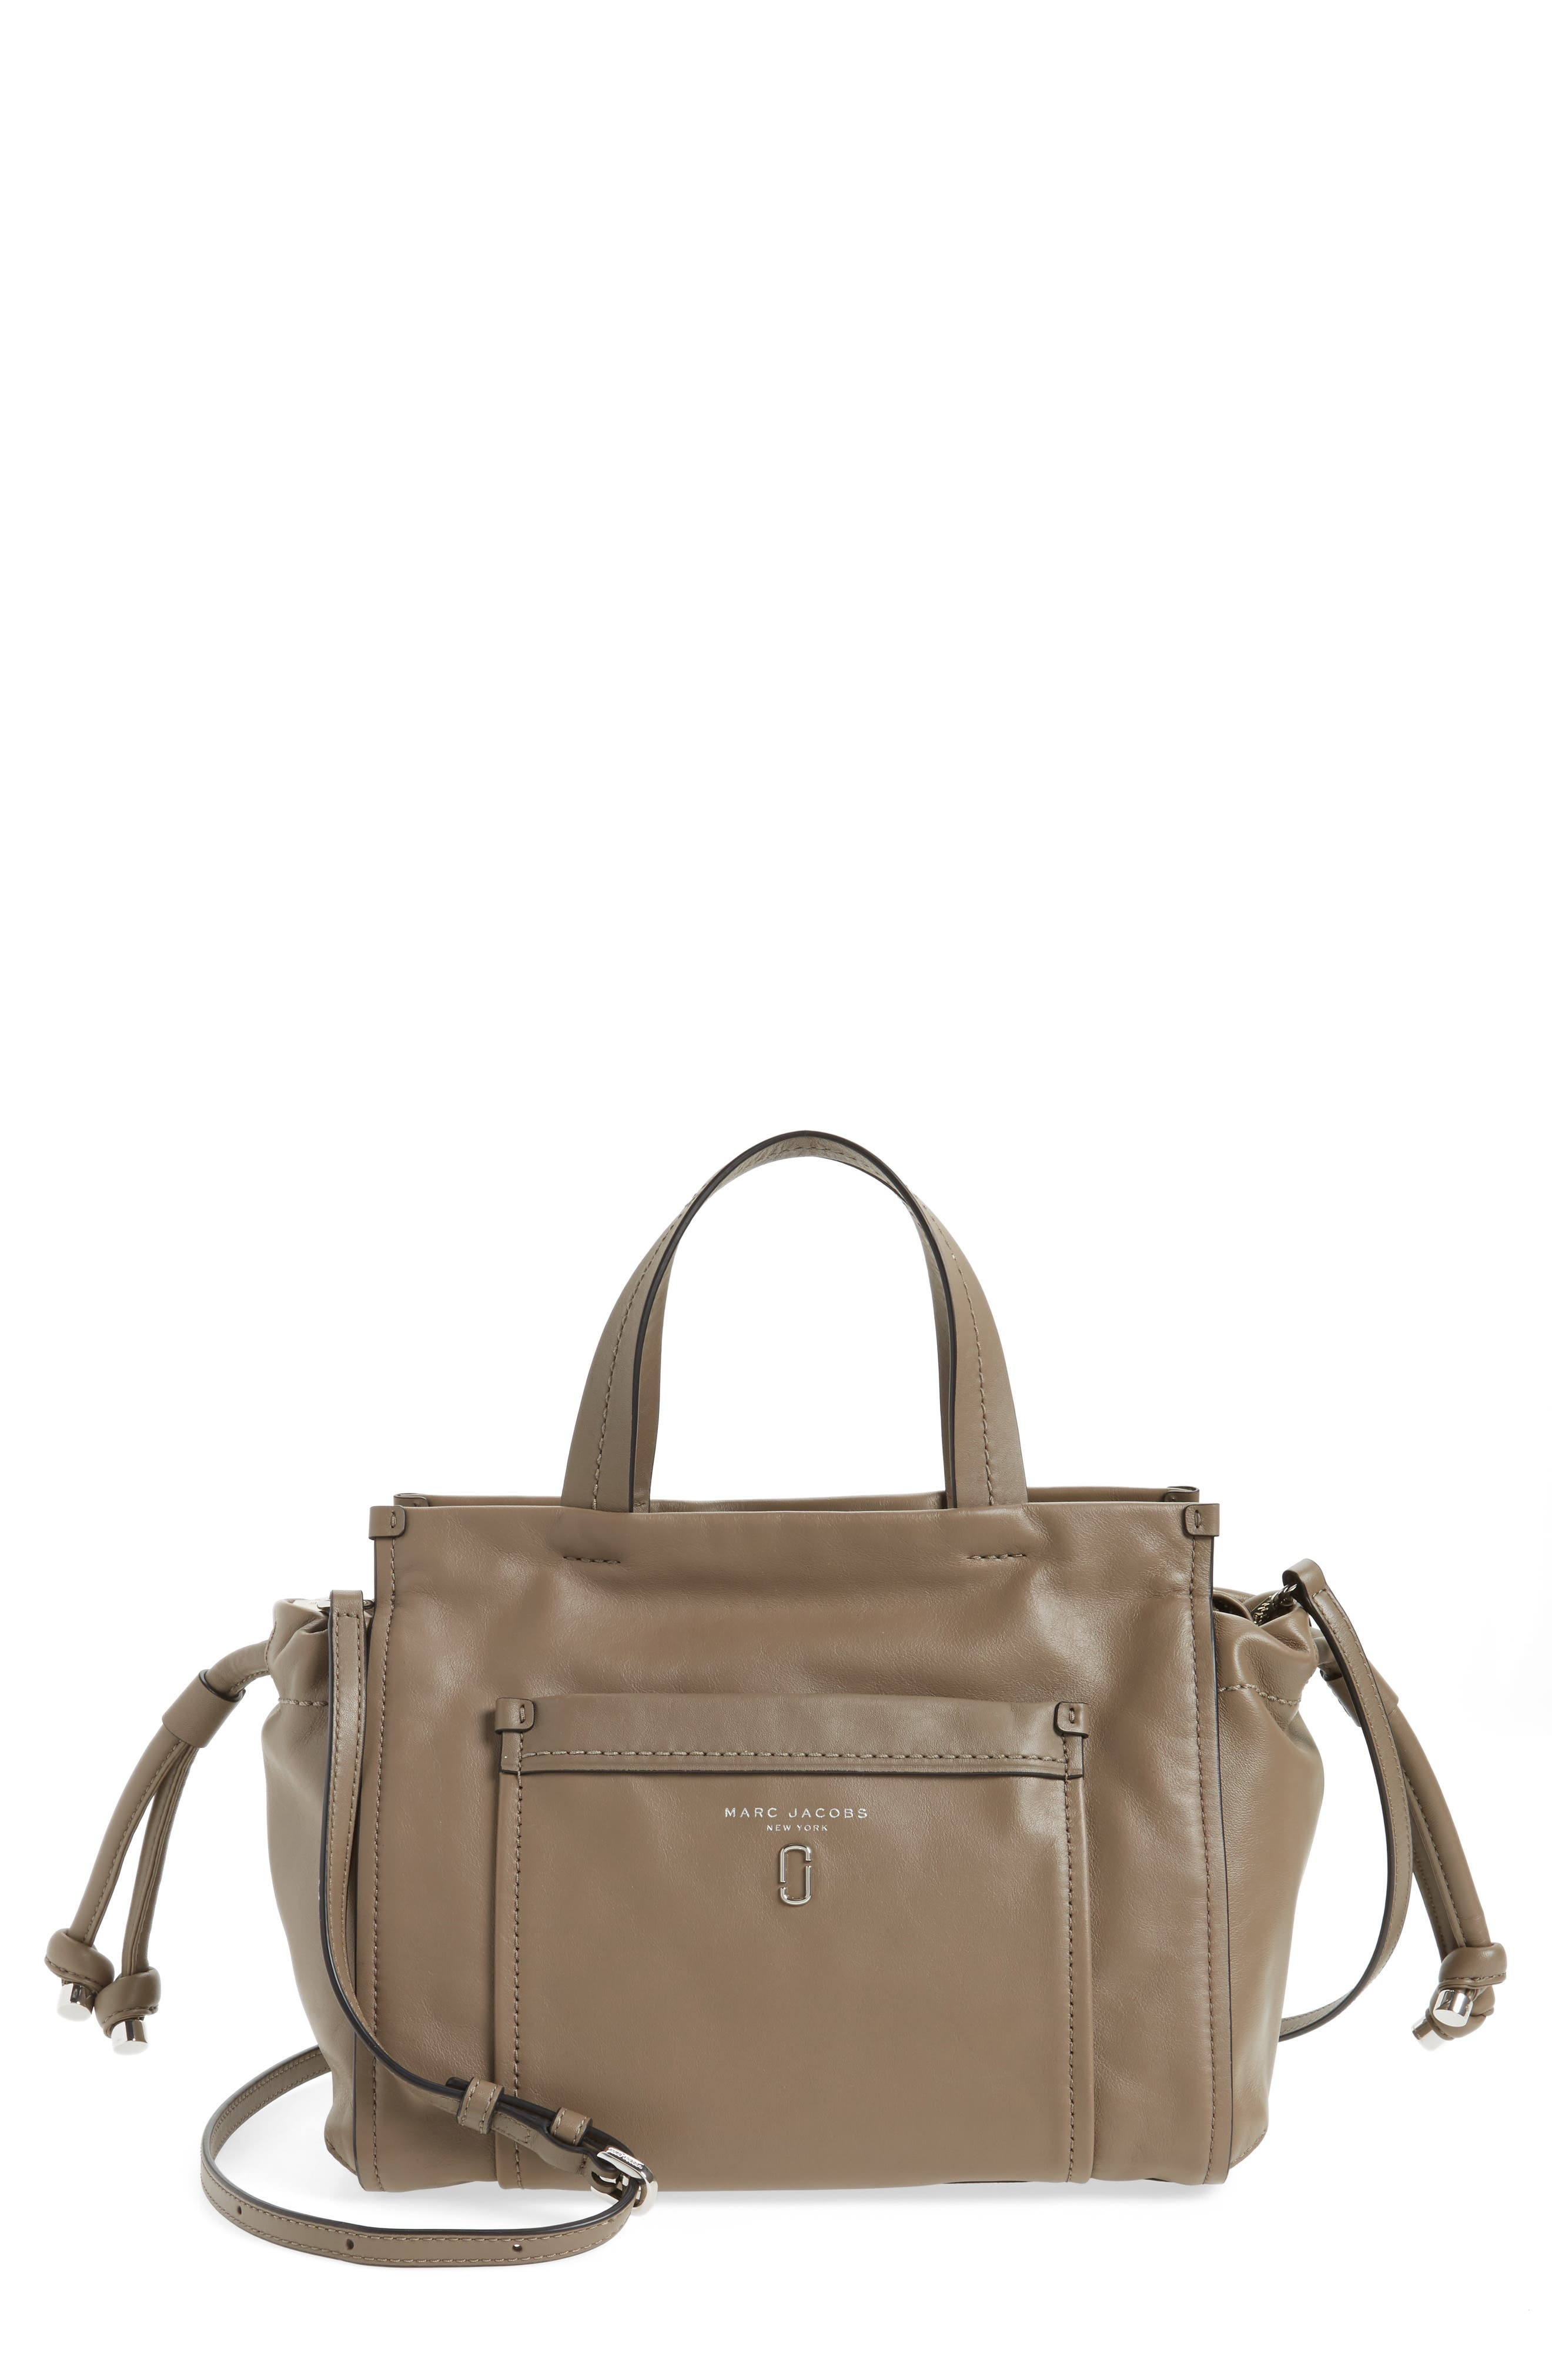 Main Image - MARC JACOBS Tied Up Leather Shoulder/Crossbody Tote